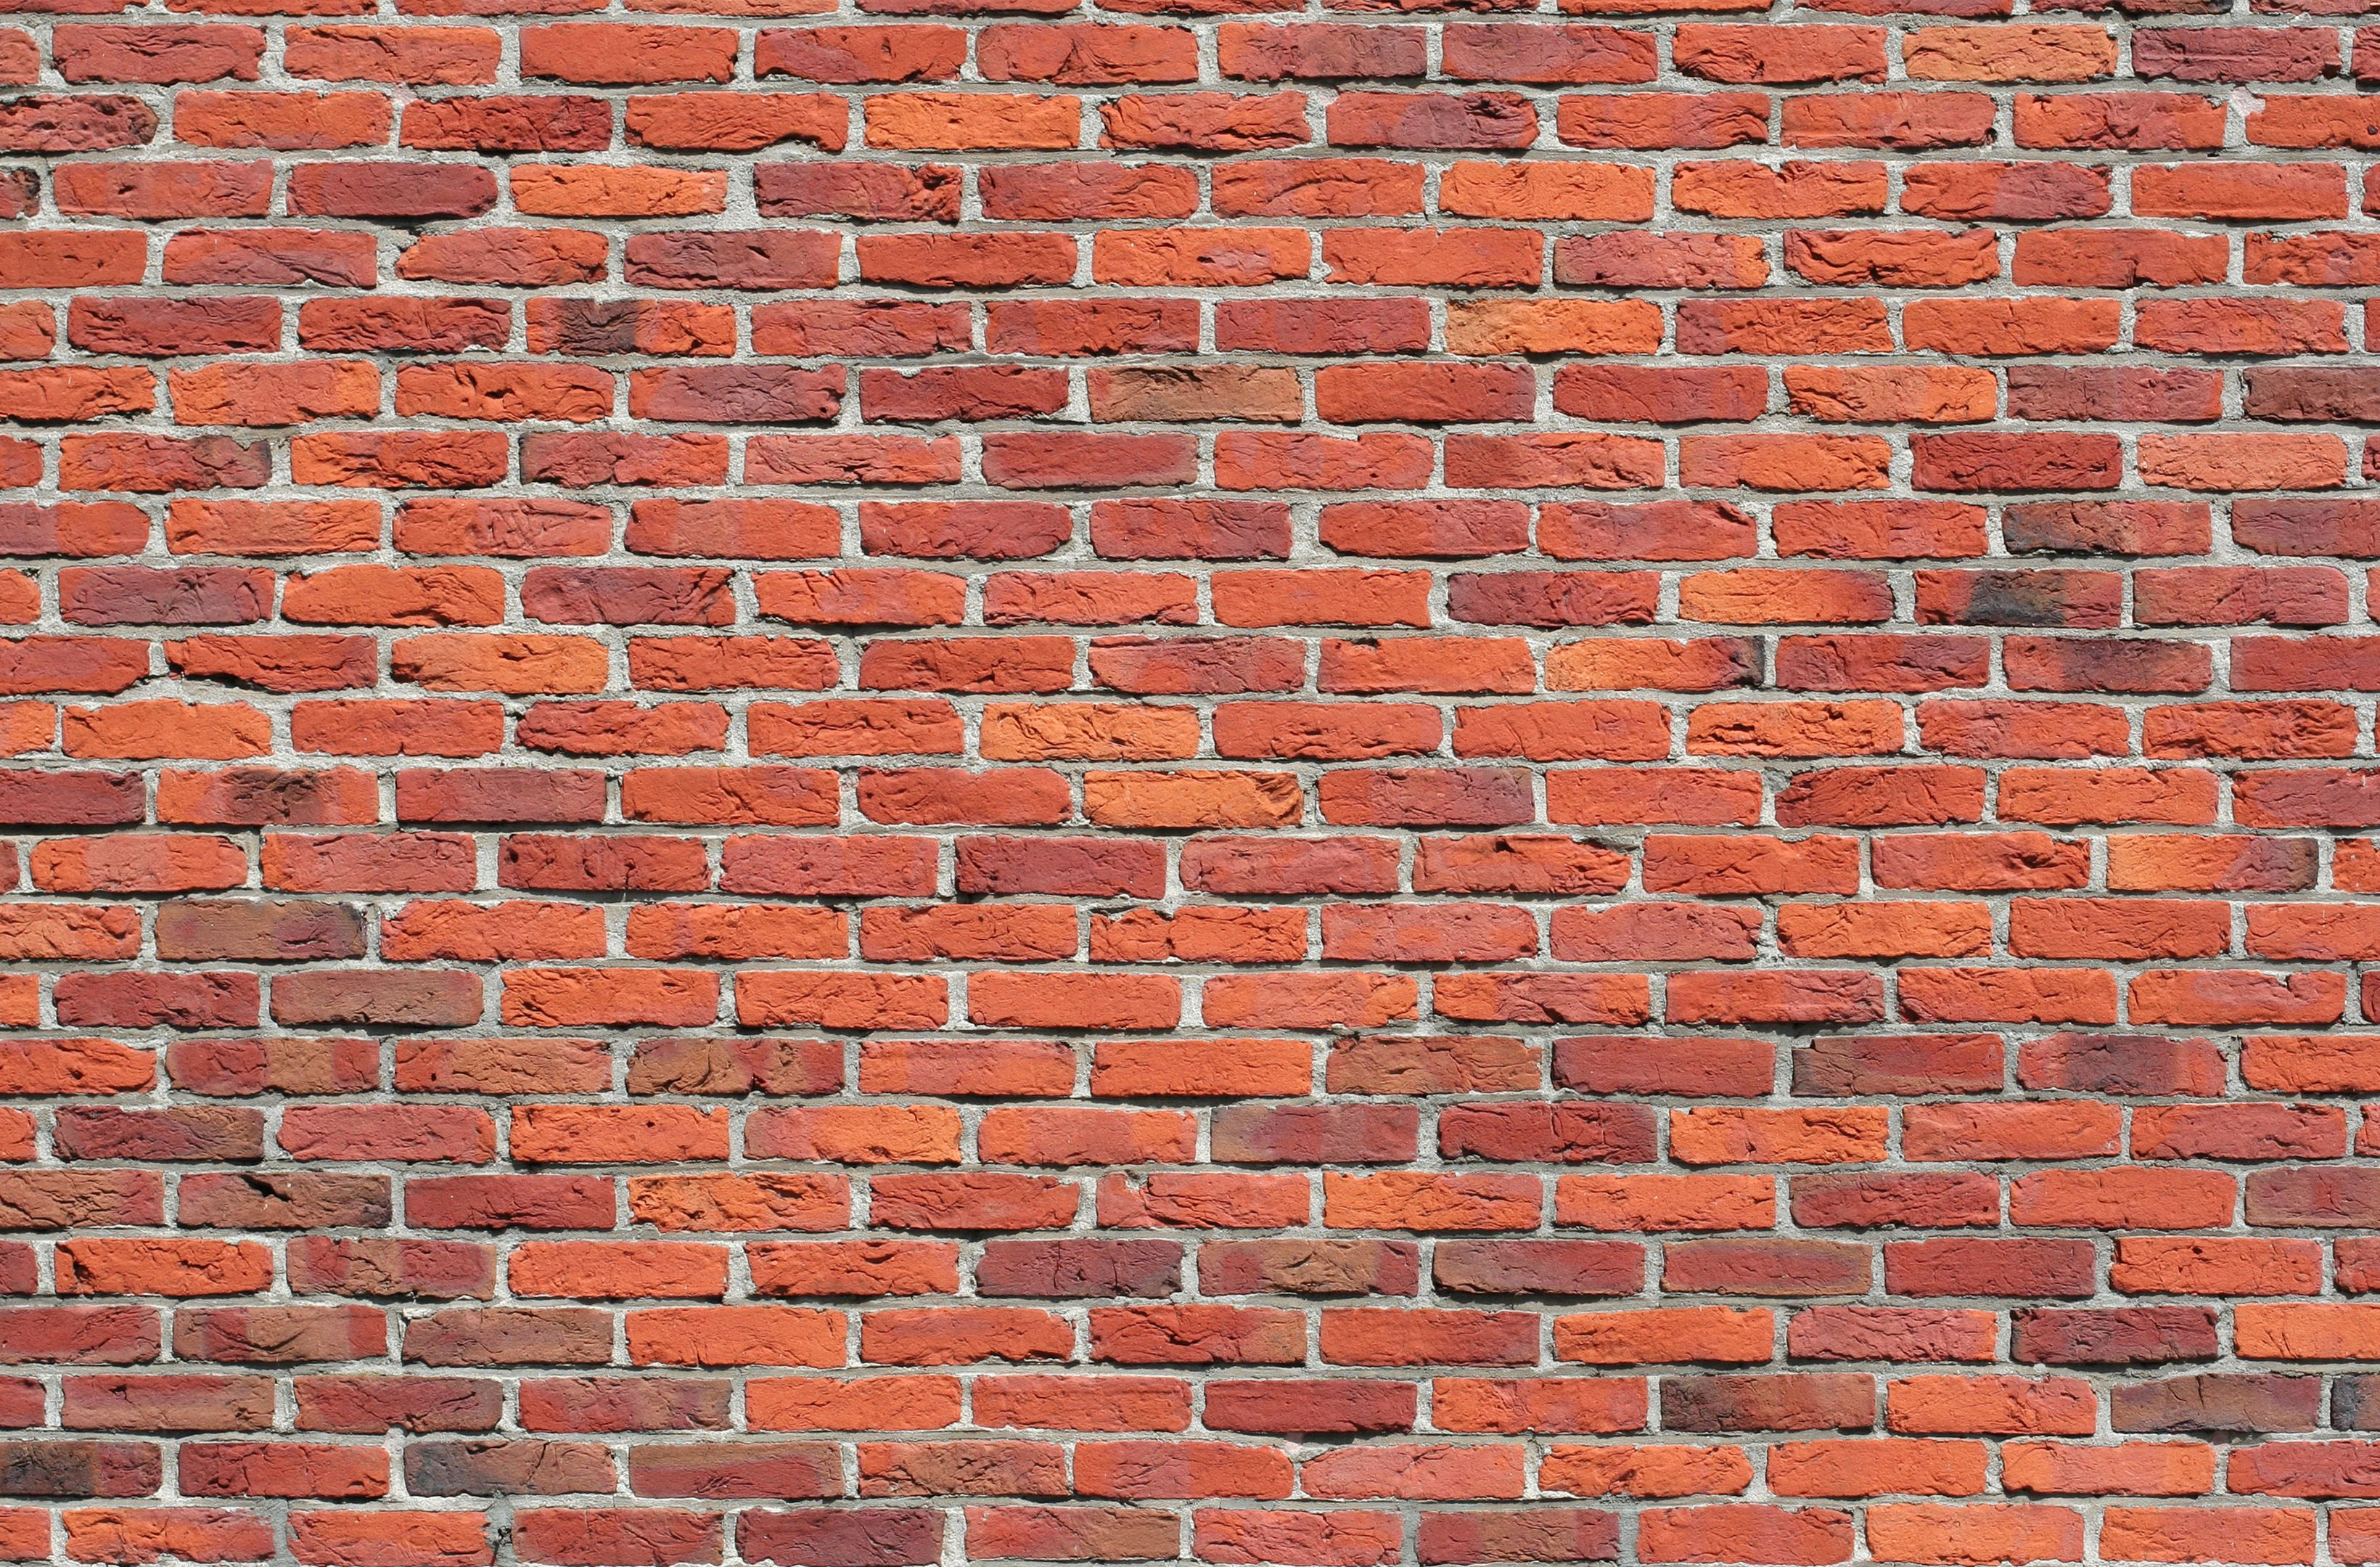 How To Add Brick To A Wall Brick Wall Texture Download Photo Image Bricks Brick